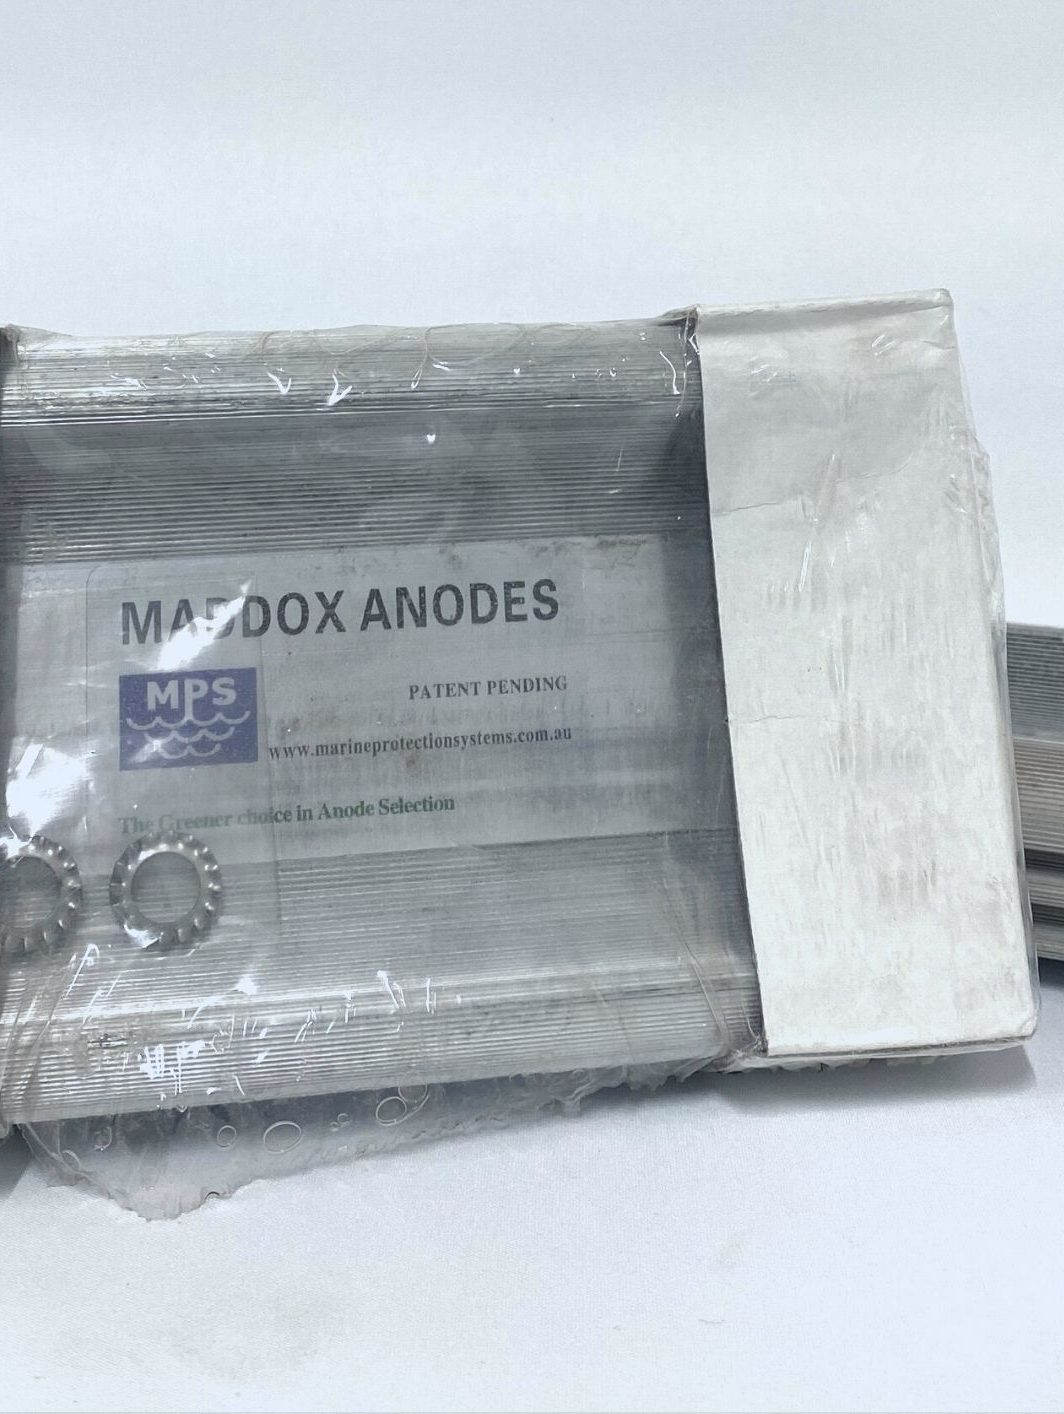 MPS Maddox Anodes